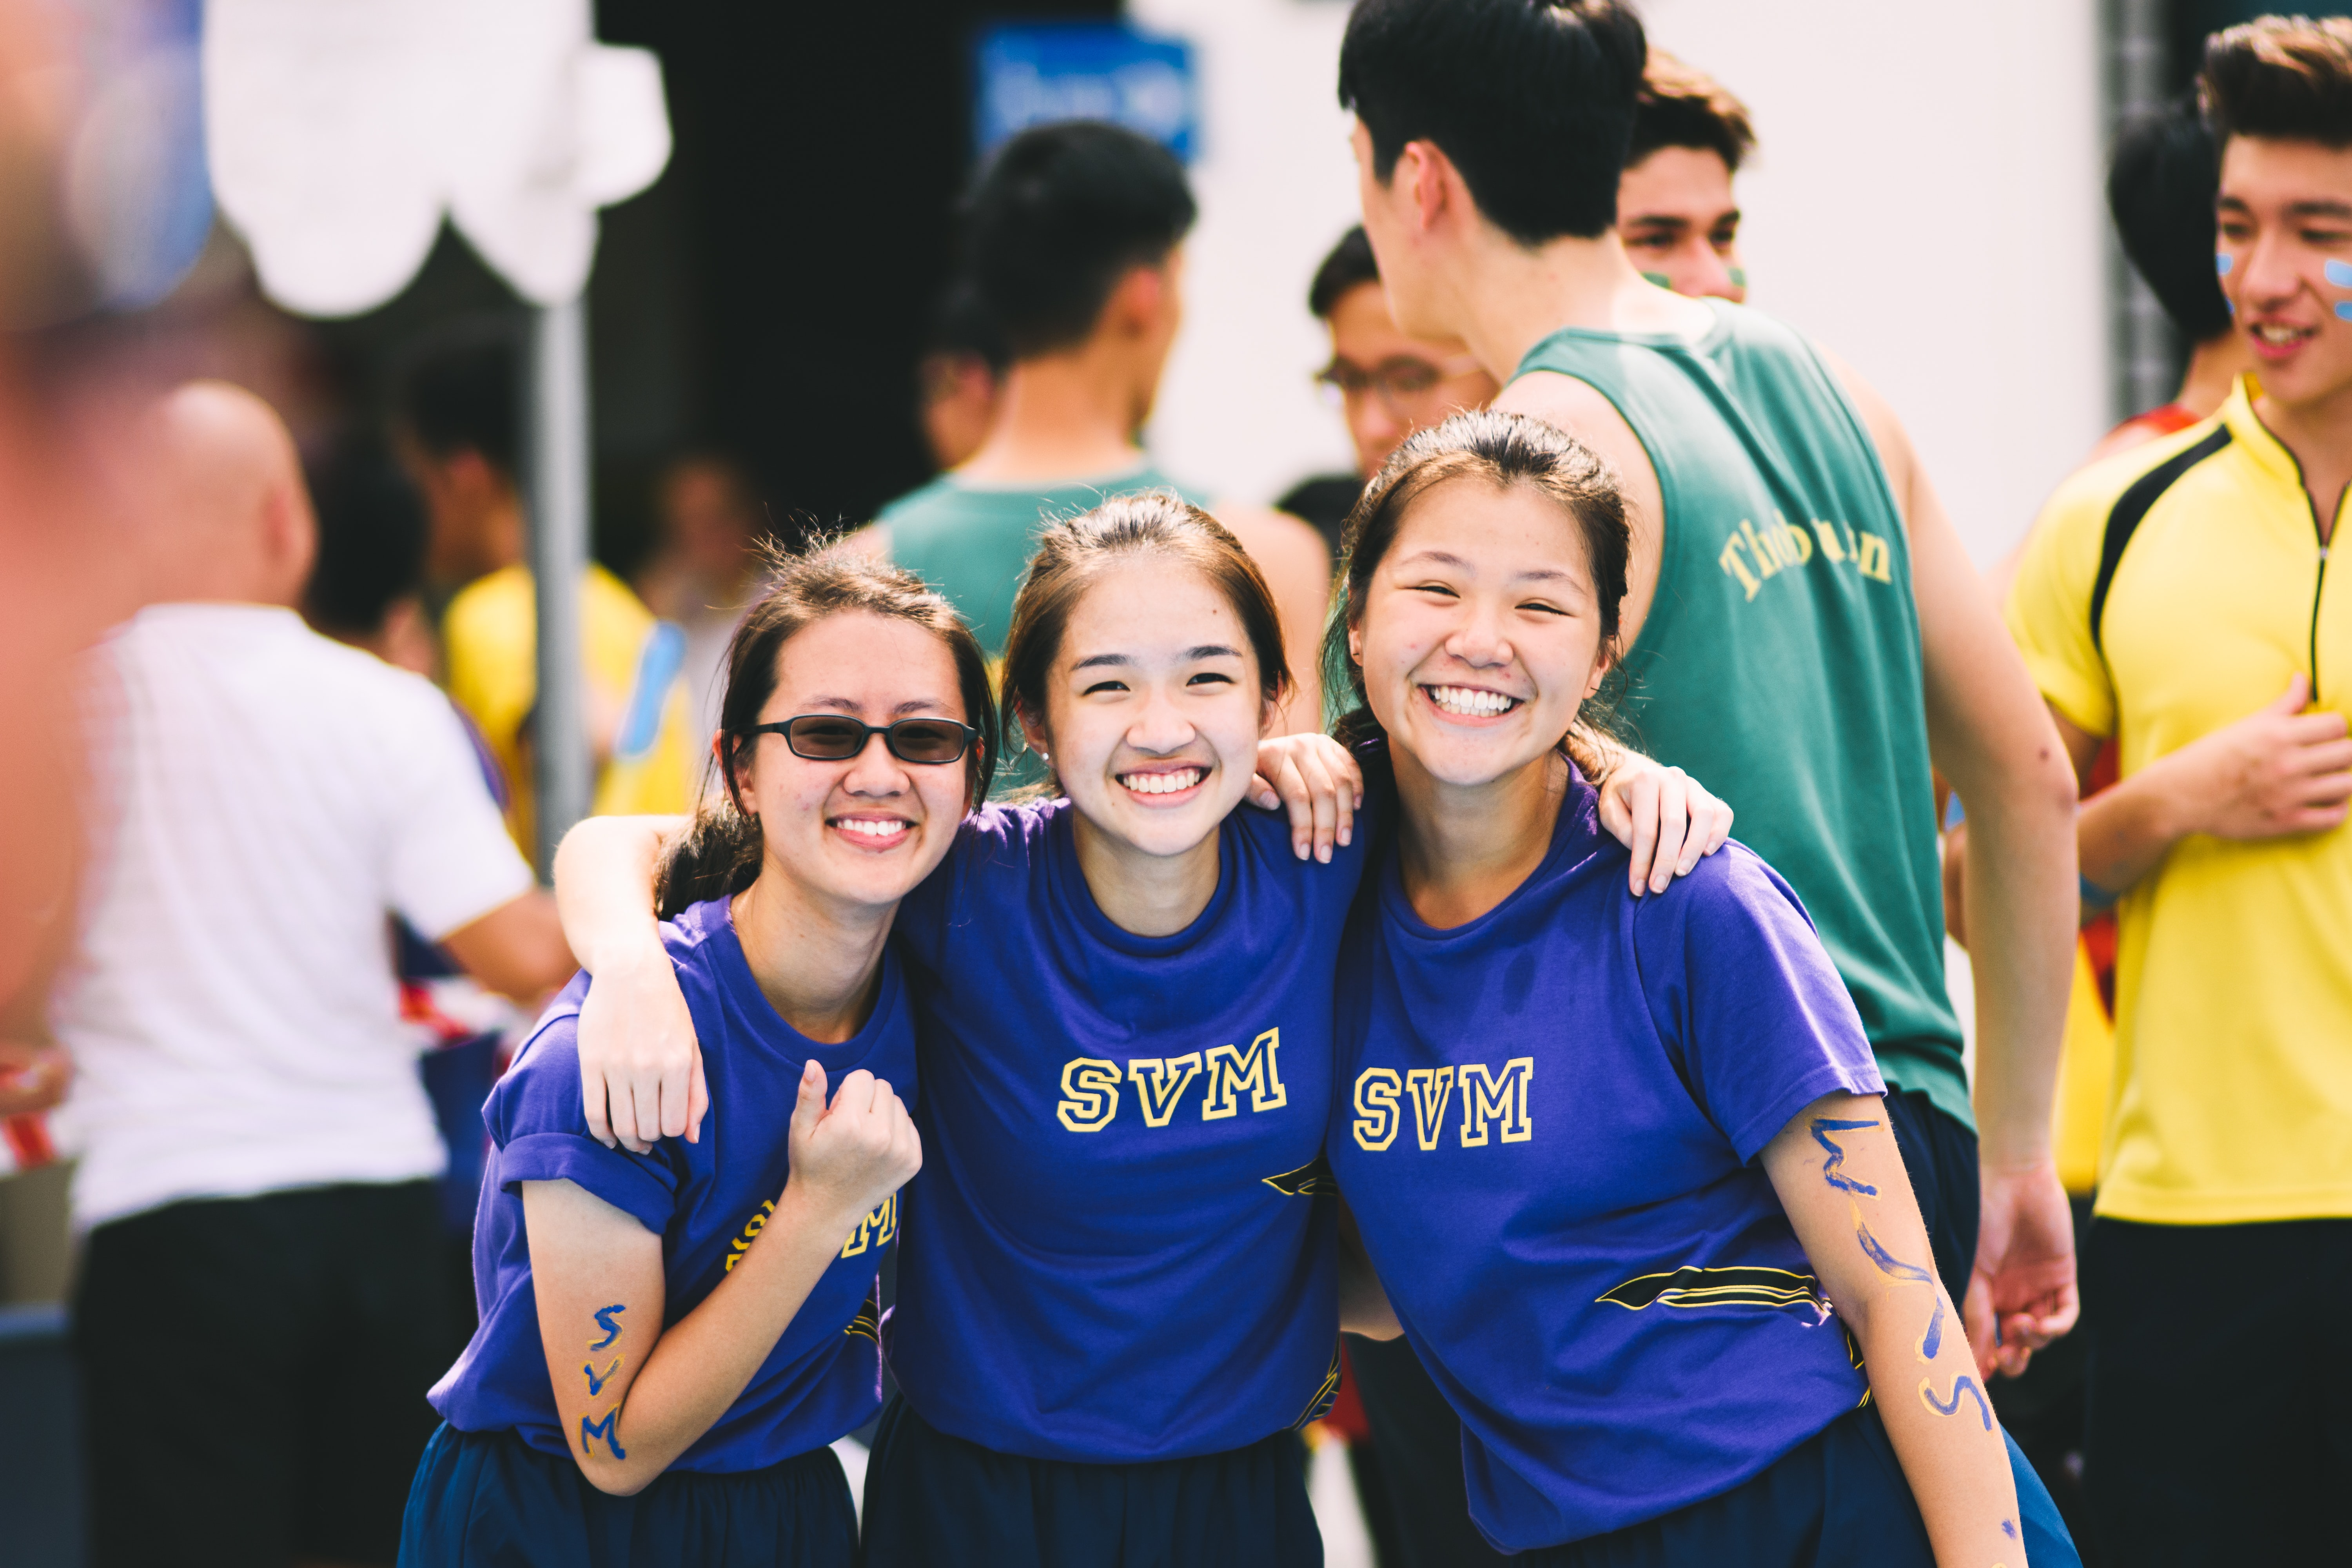 Group of female students excitedly smiling at the camera during a sports event